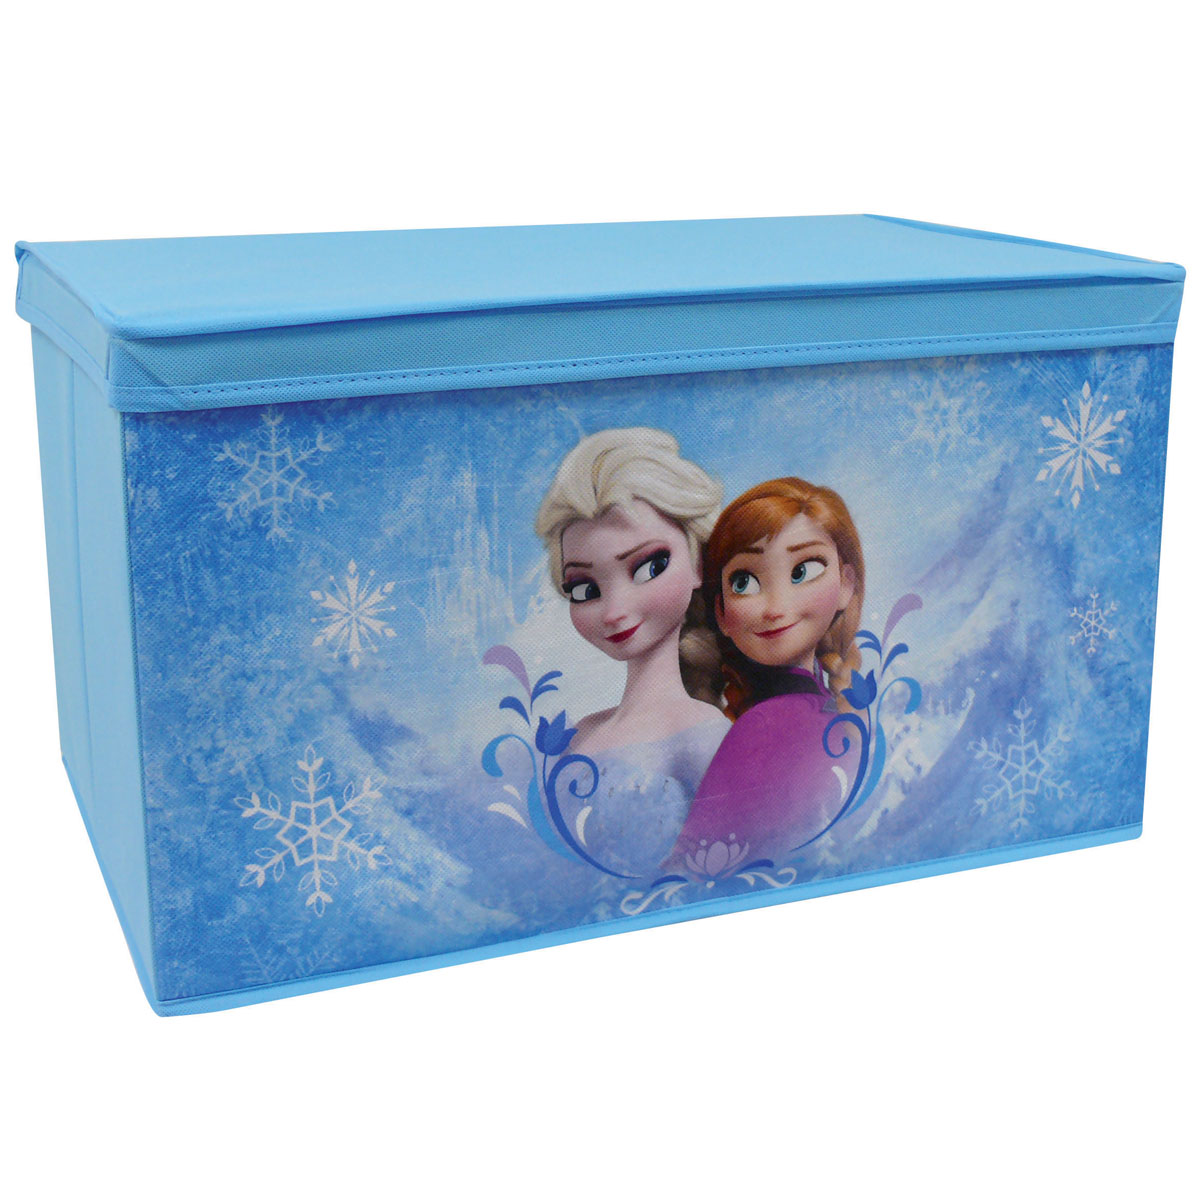 neuf coffre jouets en tissu pliable la reine des neiges disney ebay. Black Bedroom Furniture Sets. Home Design Ideas